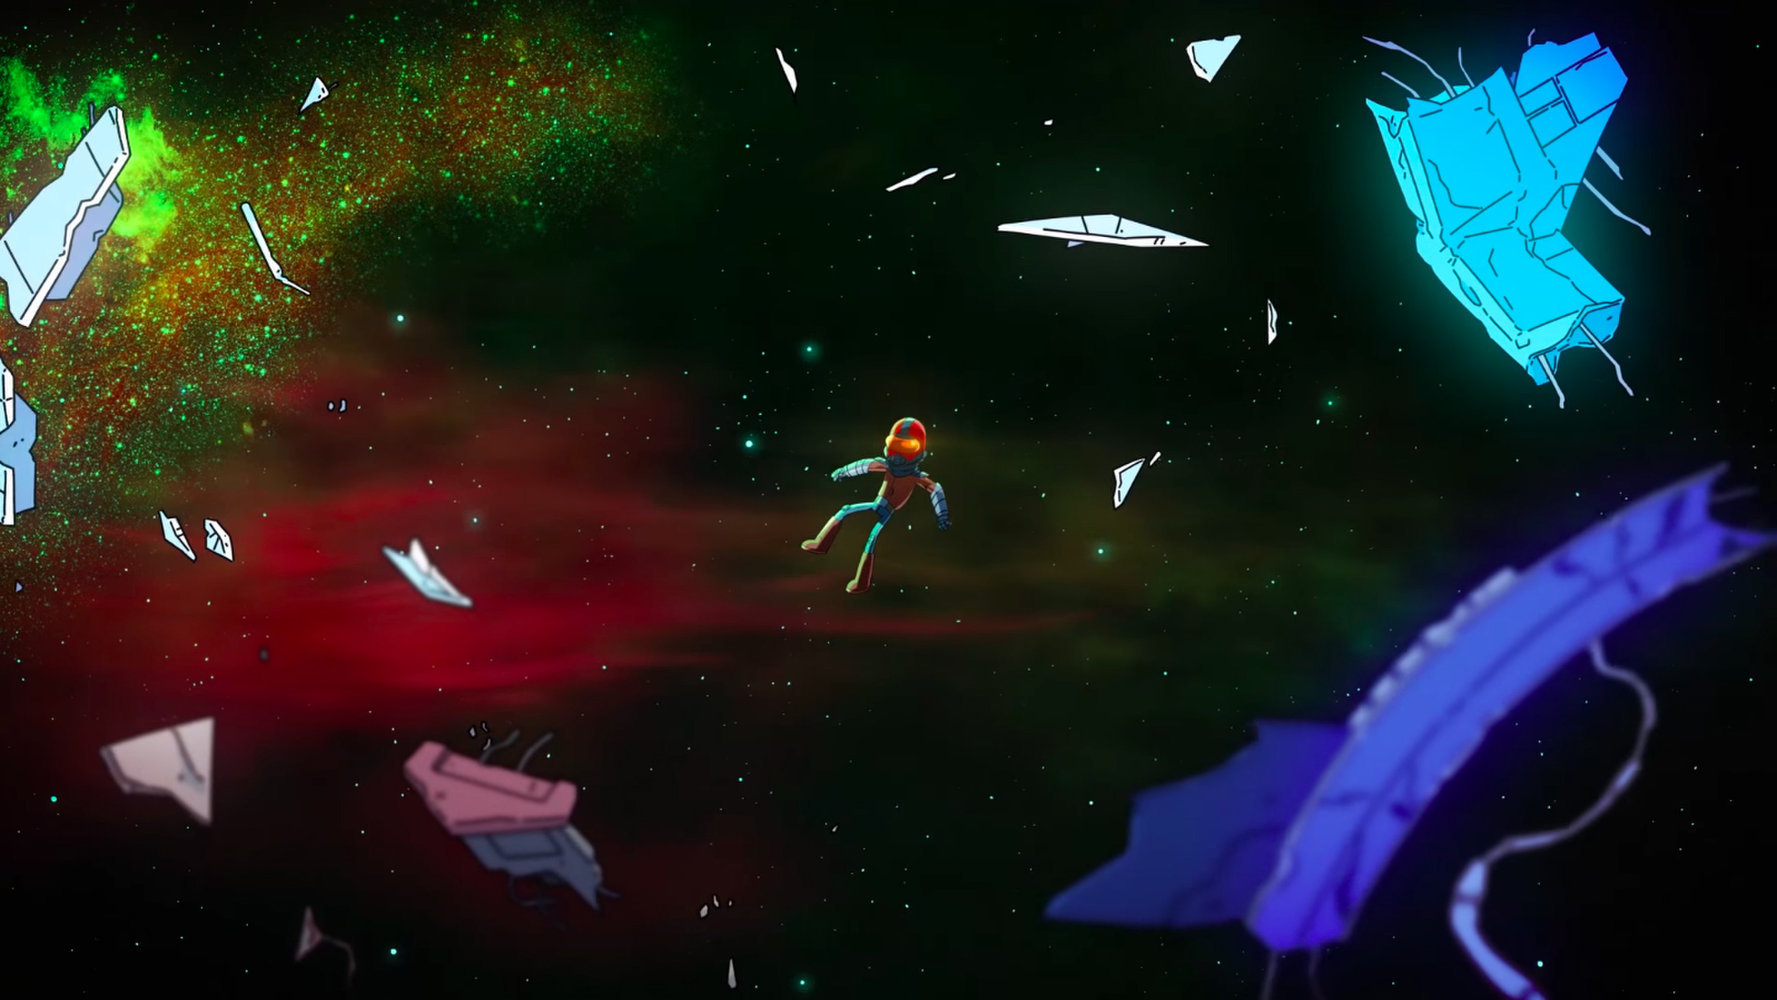 final space Garry floating